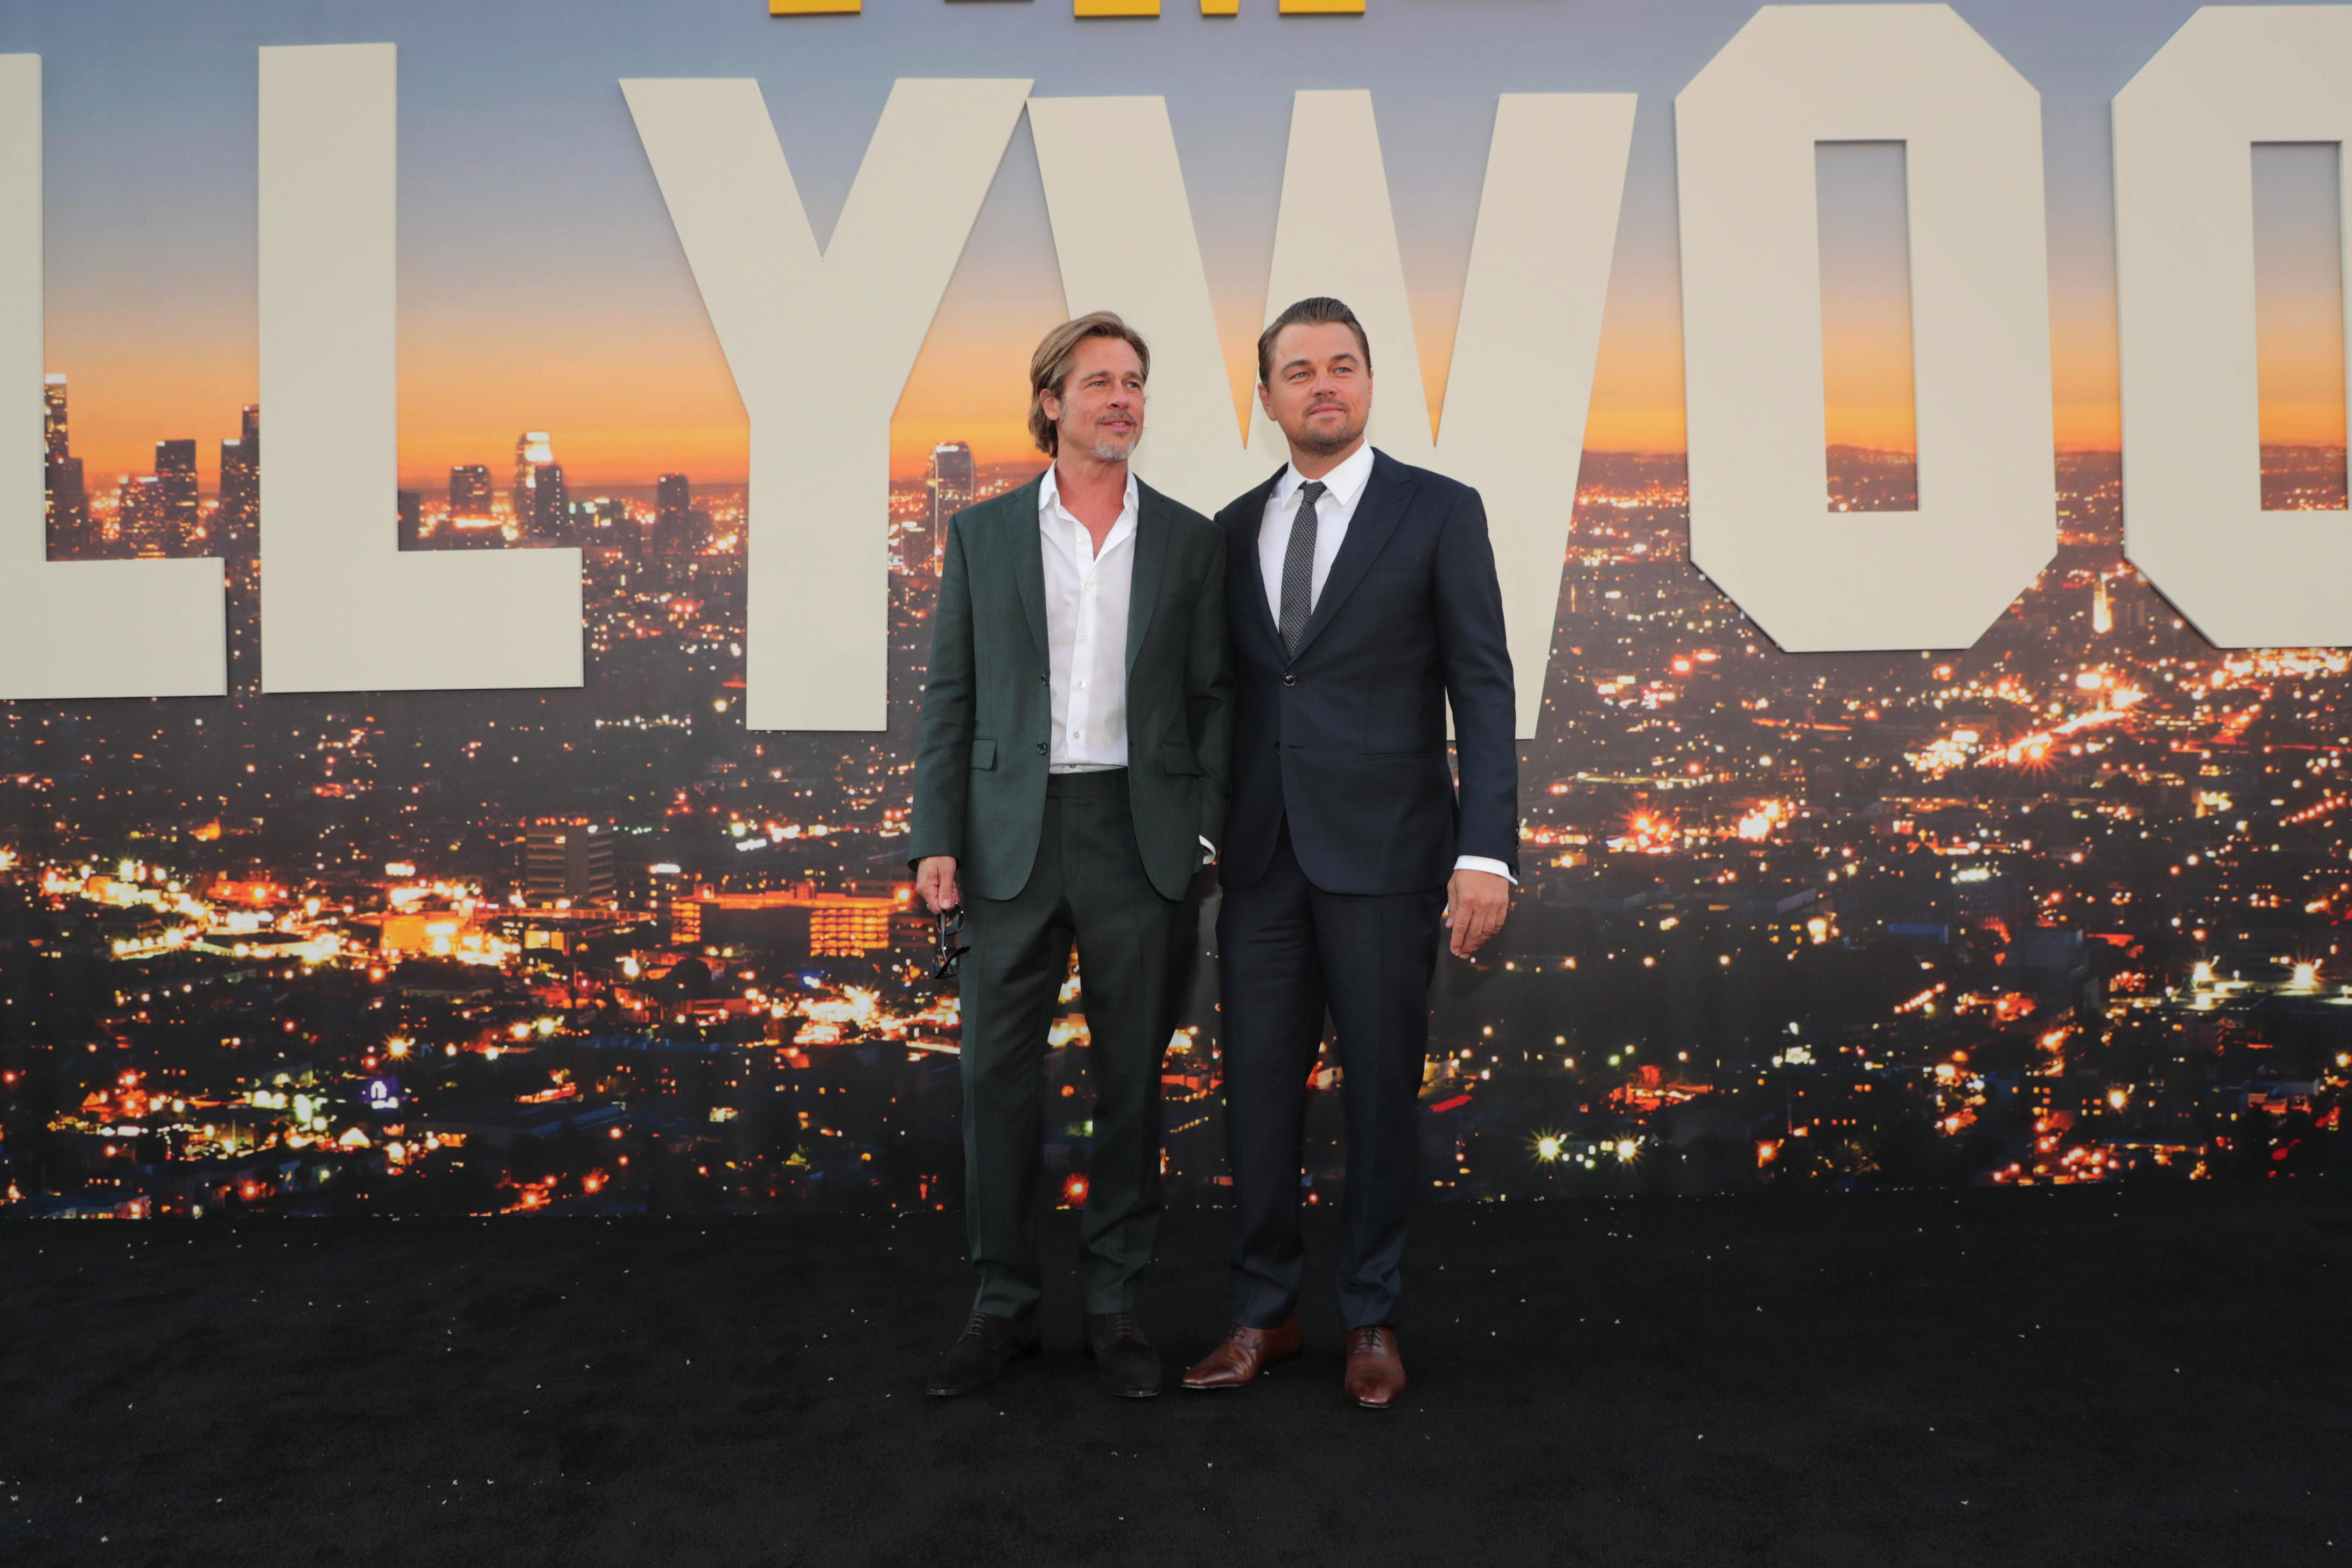 """Brad Pitt and Leonardo DiCaprio at the Premiere of Sony Pictures' """"Once Upon A Time In Hollywood"""" at the TCL Chinese Theatre.Sony Pictures 'Once Upon A Time In Hollywood' film premiere, Arrivals, TCL Chinese Theatre, Hollywood, CA, USA - 22 July 2019"""